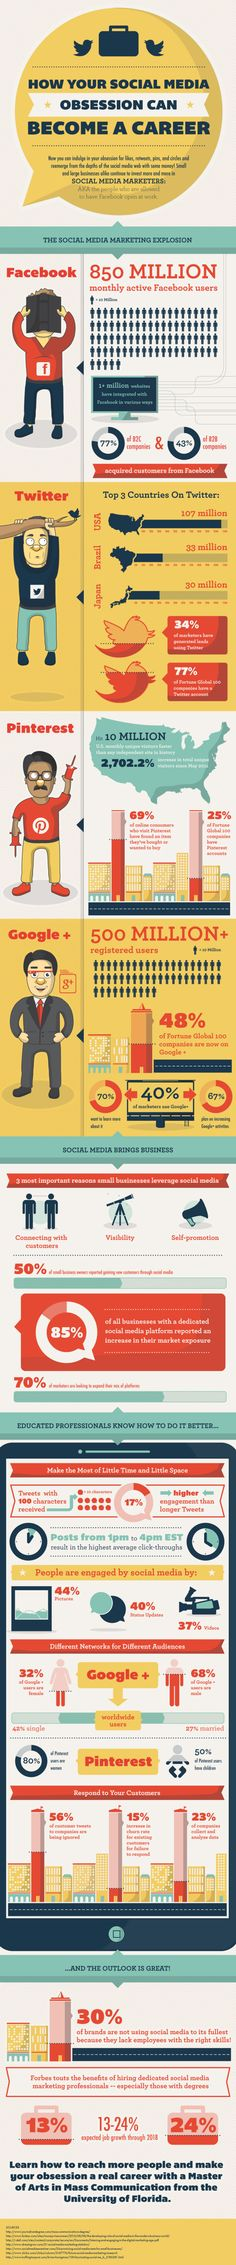 How your social media obsession can become a career [infographic]